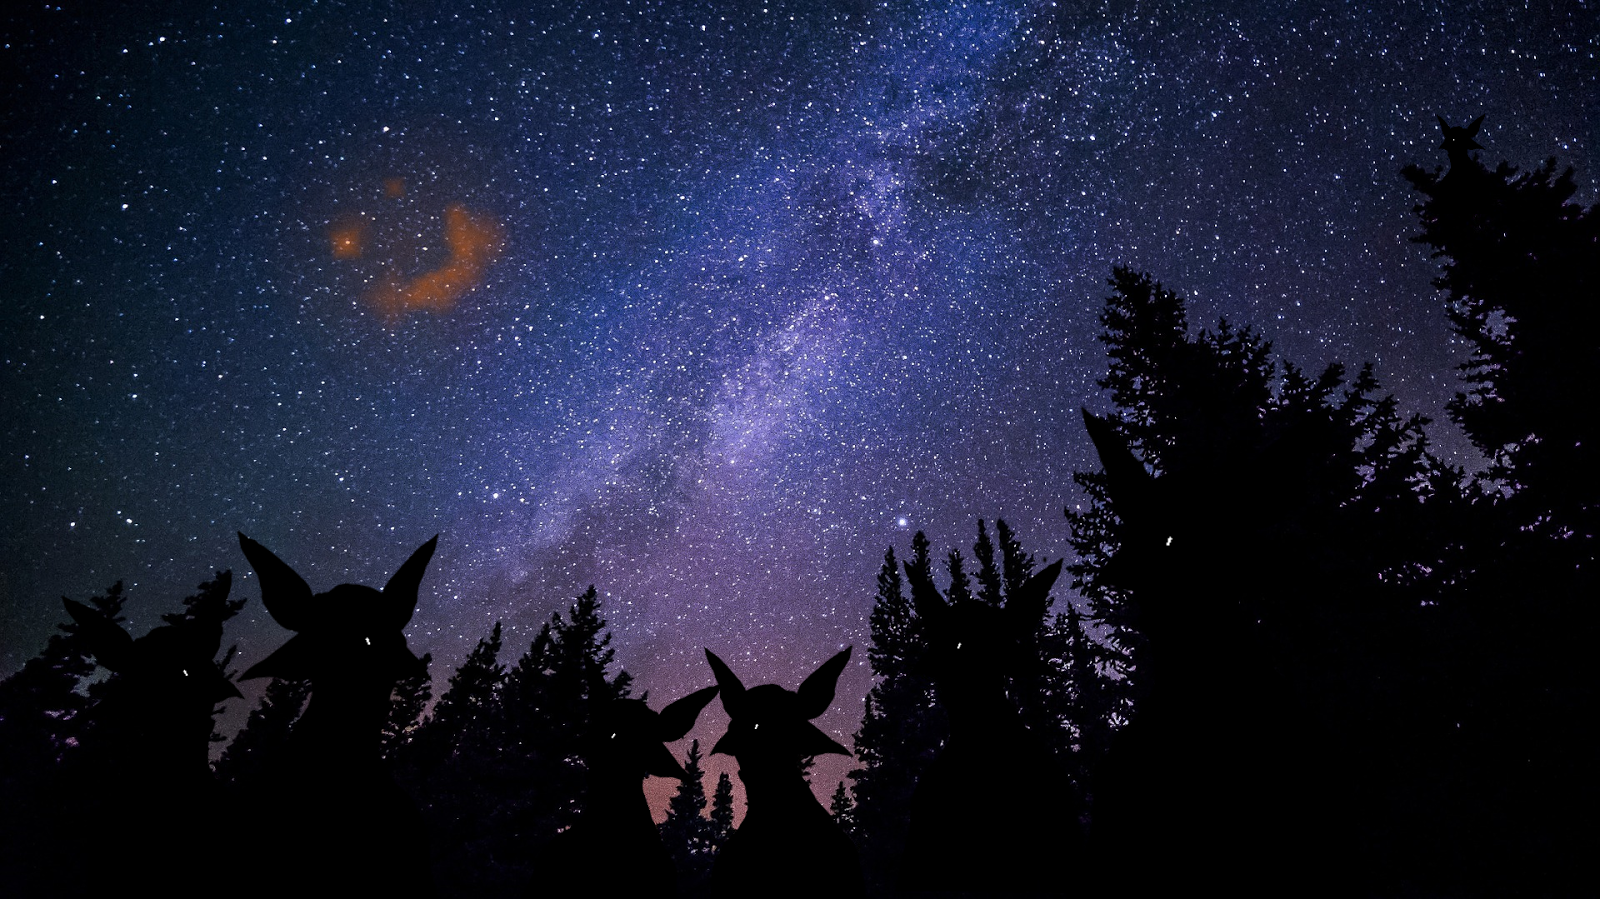 Image: A tribe of molluscoid primitives on Sirius V observes the glowing wreckage from the Battle of Sirius on a clear night. This tribe seems to regard it as the malevolent embodiment of all the hatred and anger in the universe.